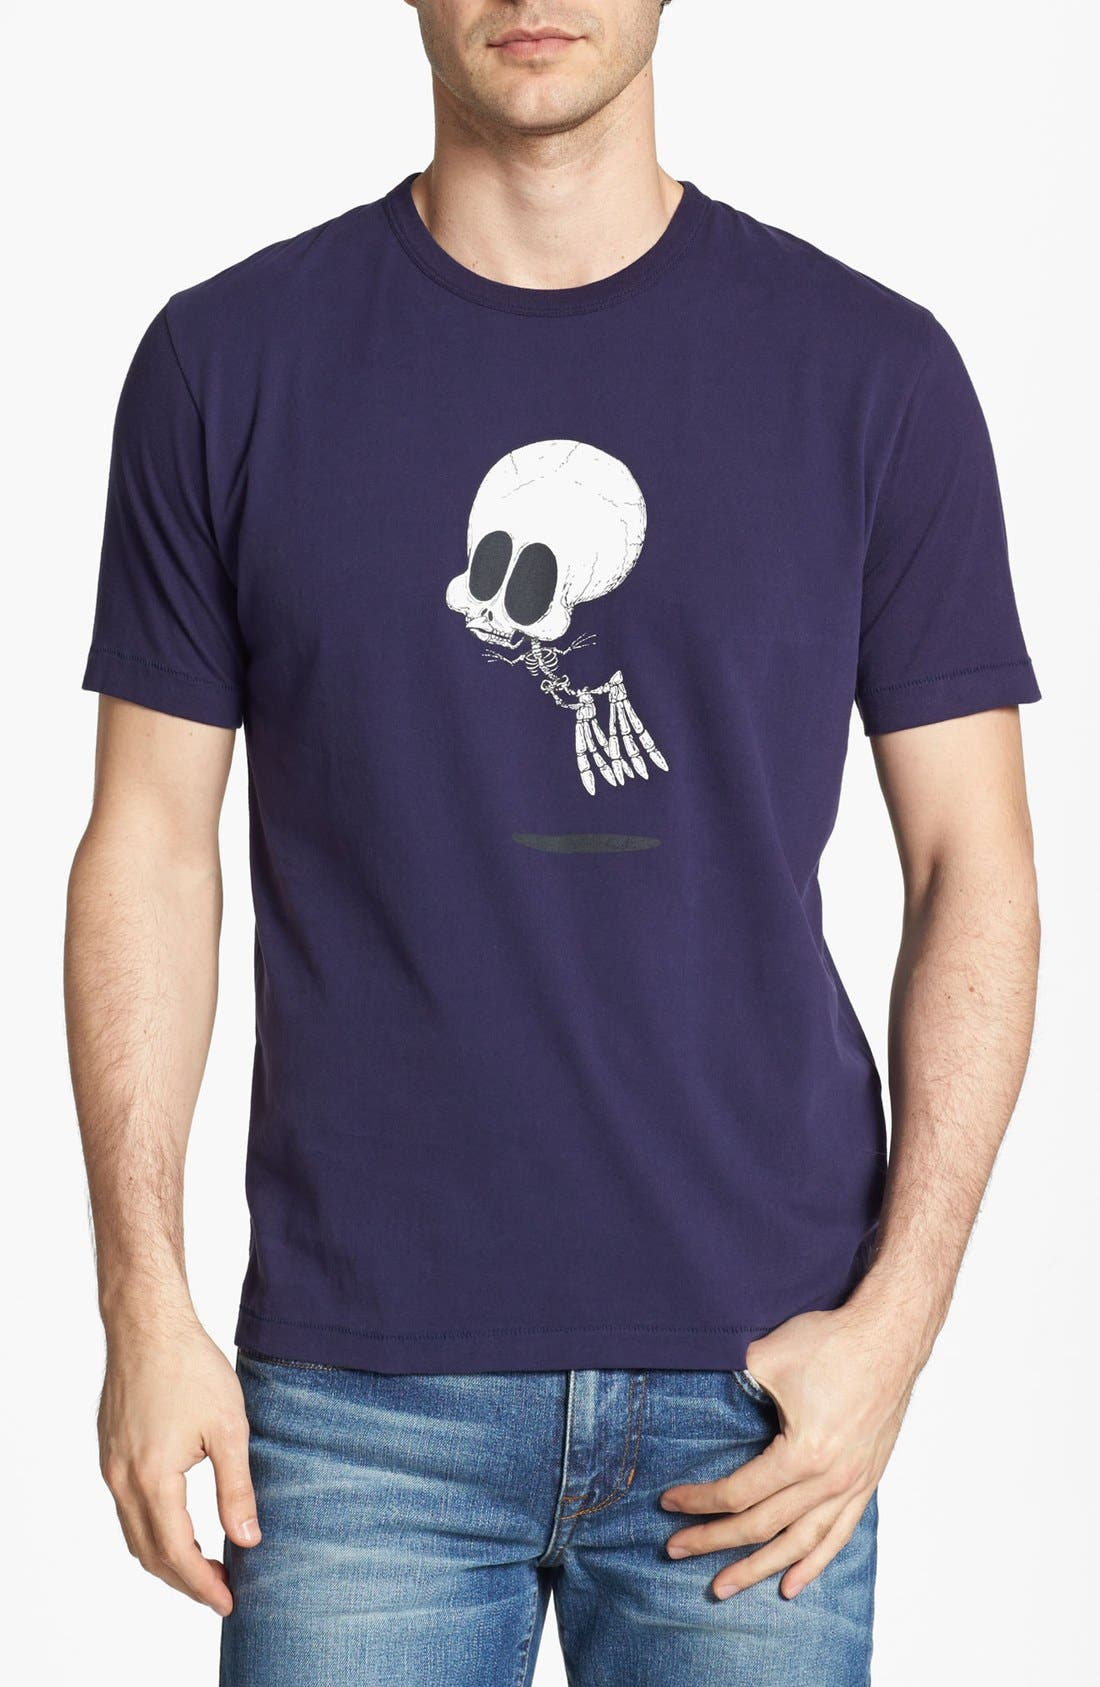 Alternate Image 1 Selected - French Connection 'Flying Skull' T-Shirt